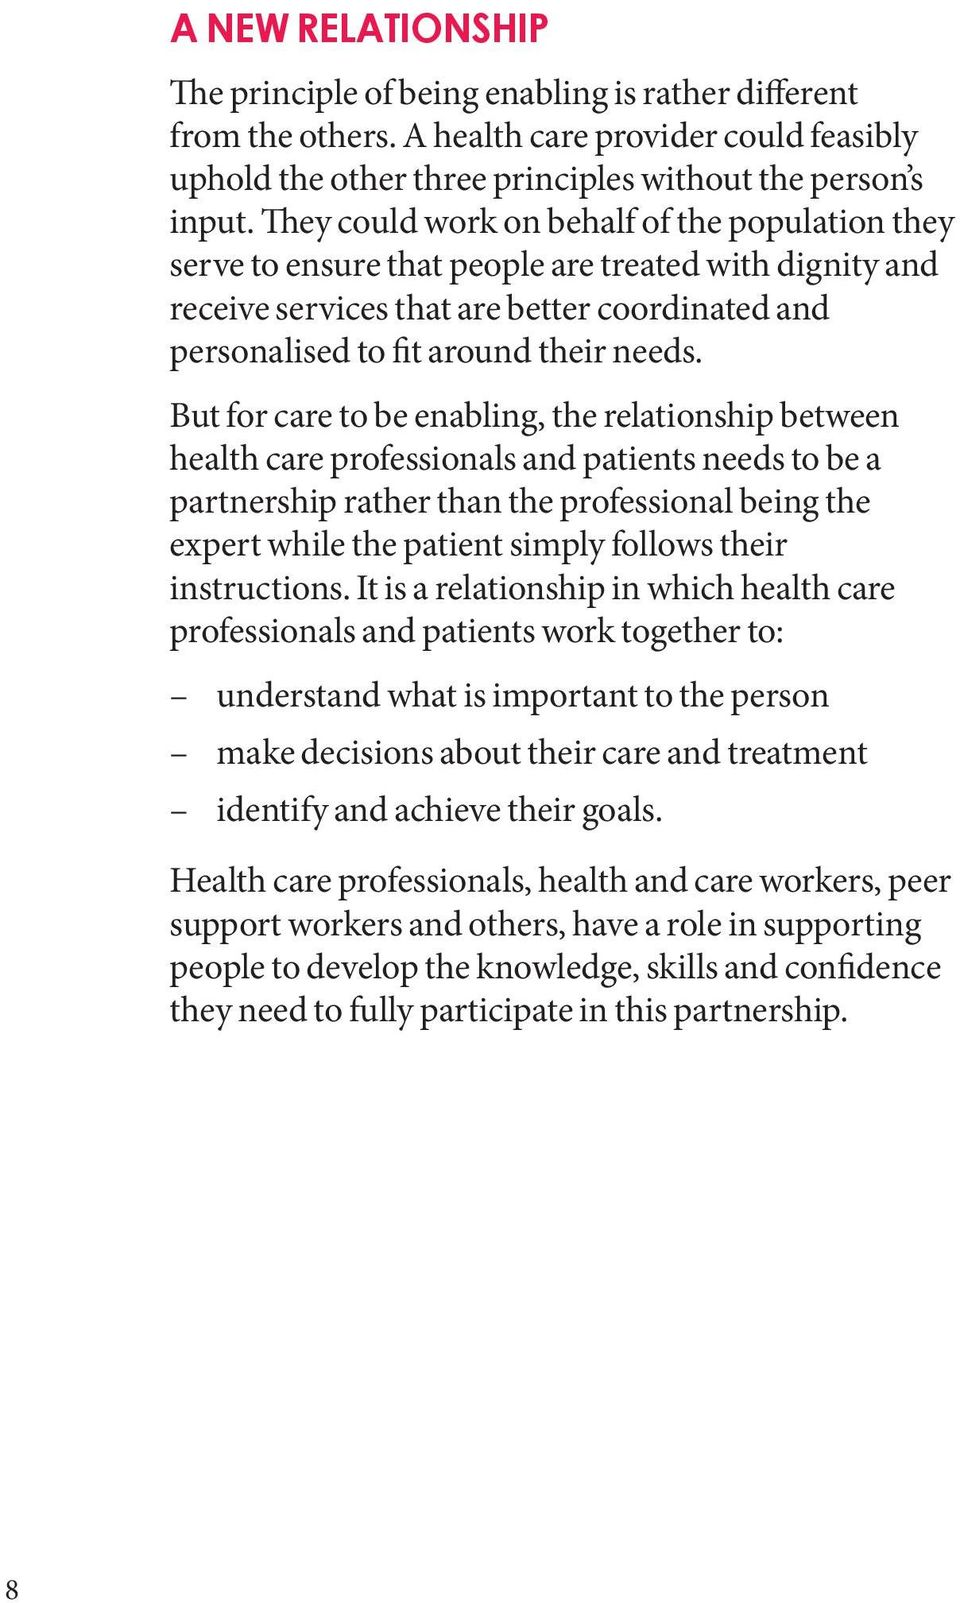 But for care to be enabling, the relationship between health care professionals and patients needs to be a partnership rather than the professional being the expert while the patient simply follows